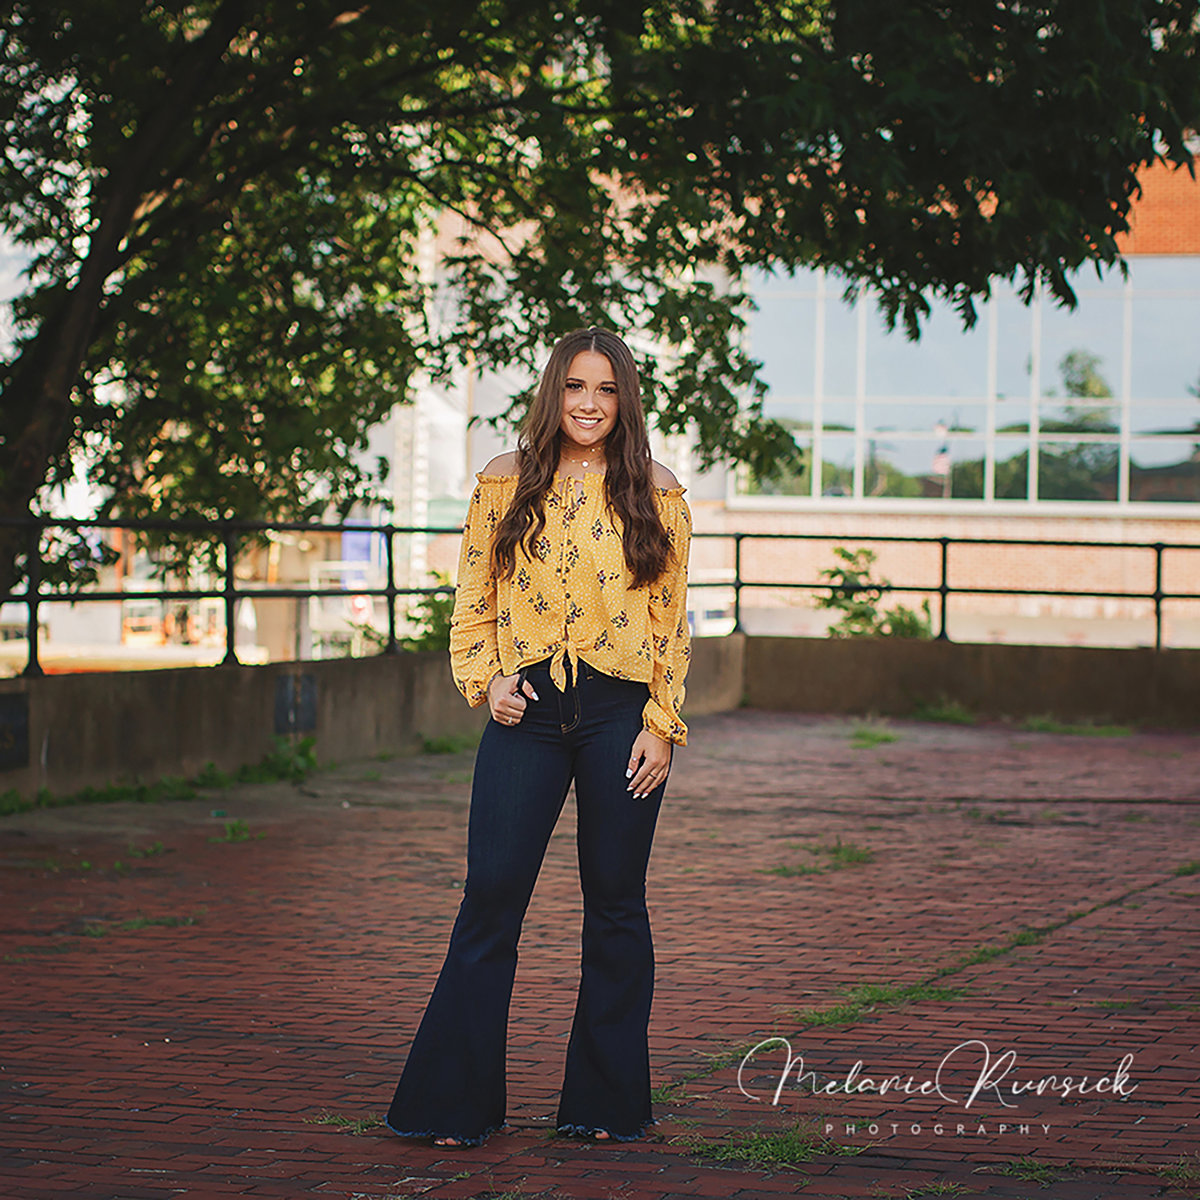 fashion senior photographer Melanie Runsick Photography